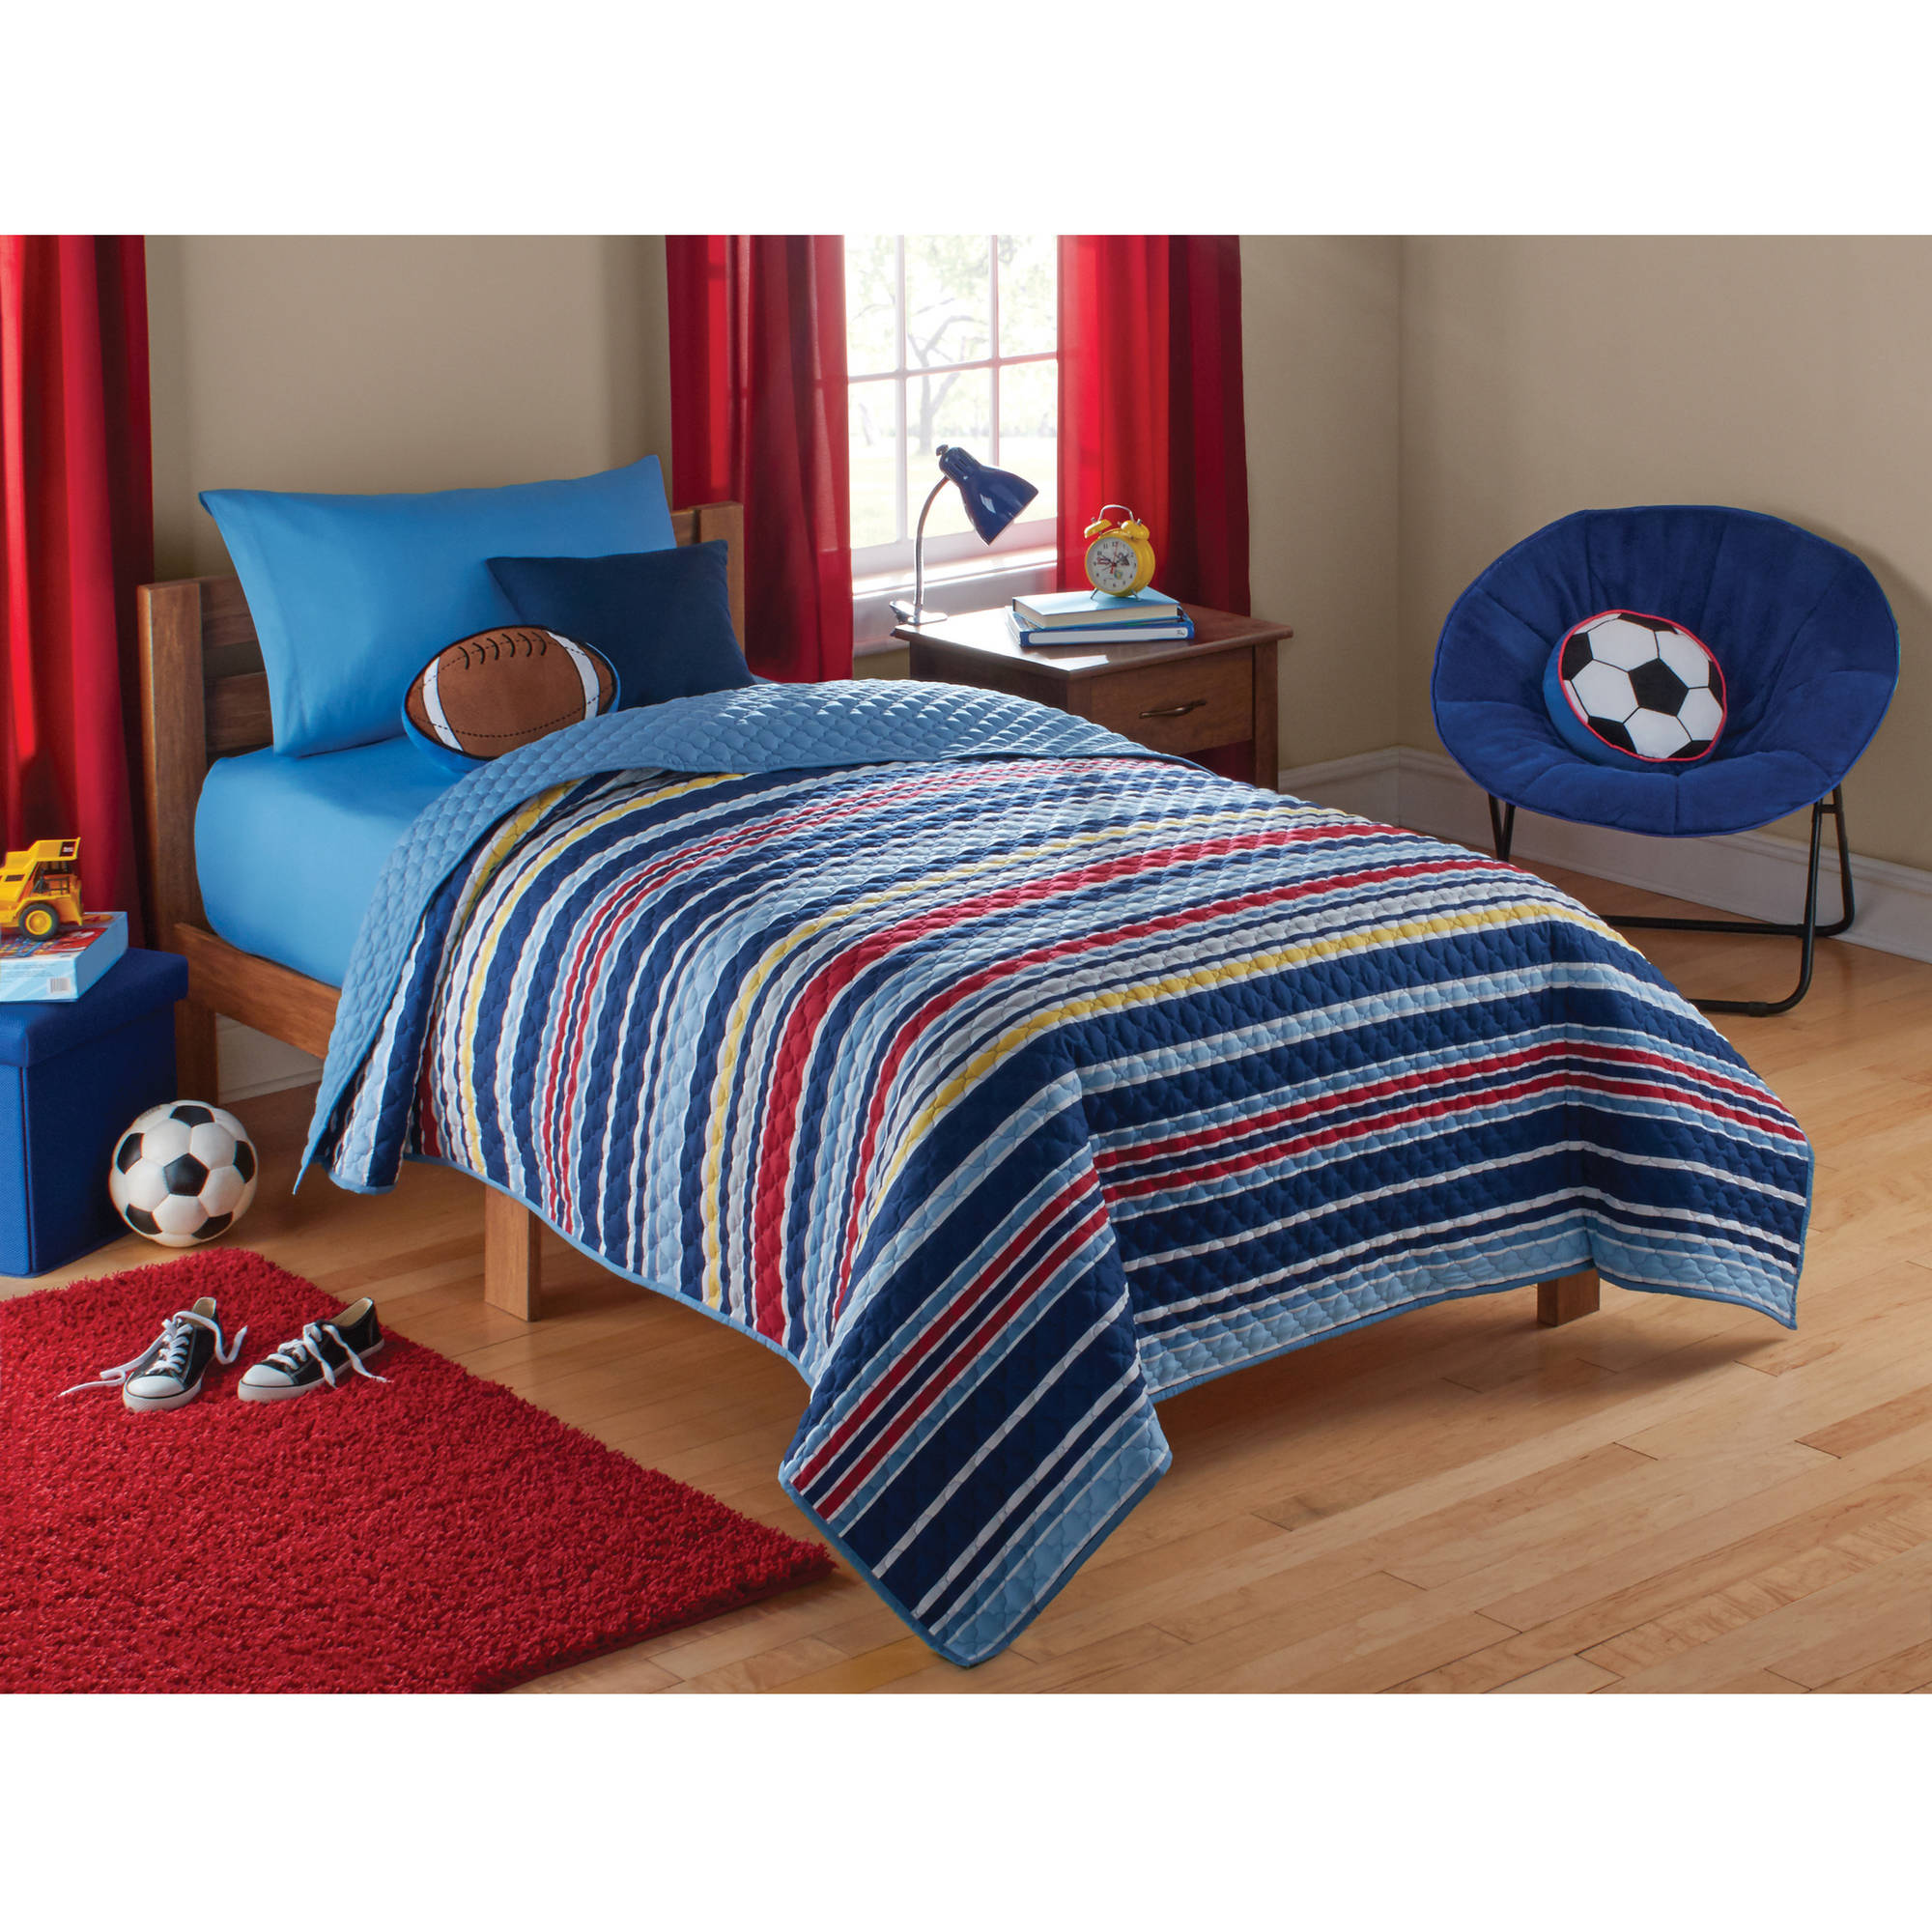 Mainstays Kids Boy Stripe Quilt Walmart Com